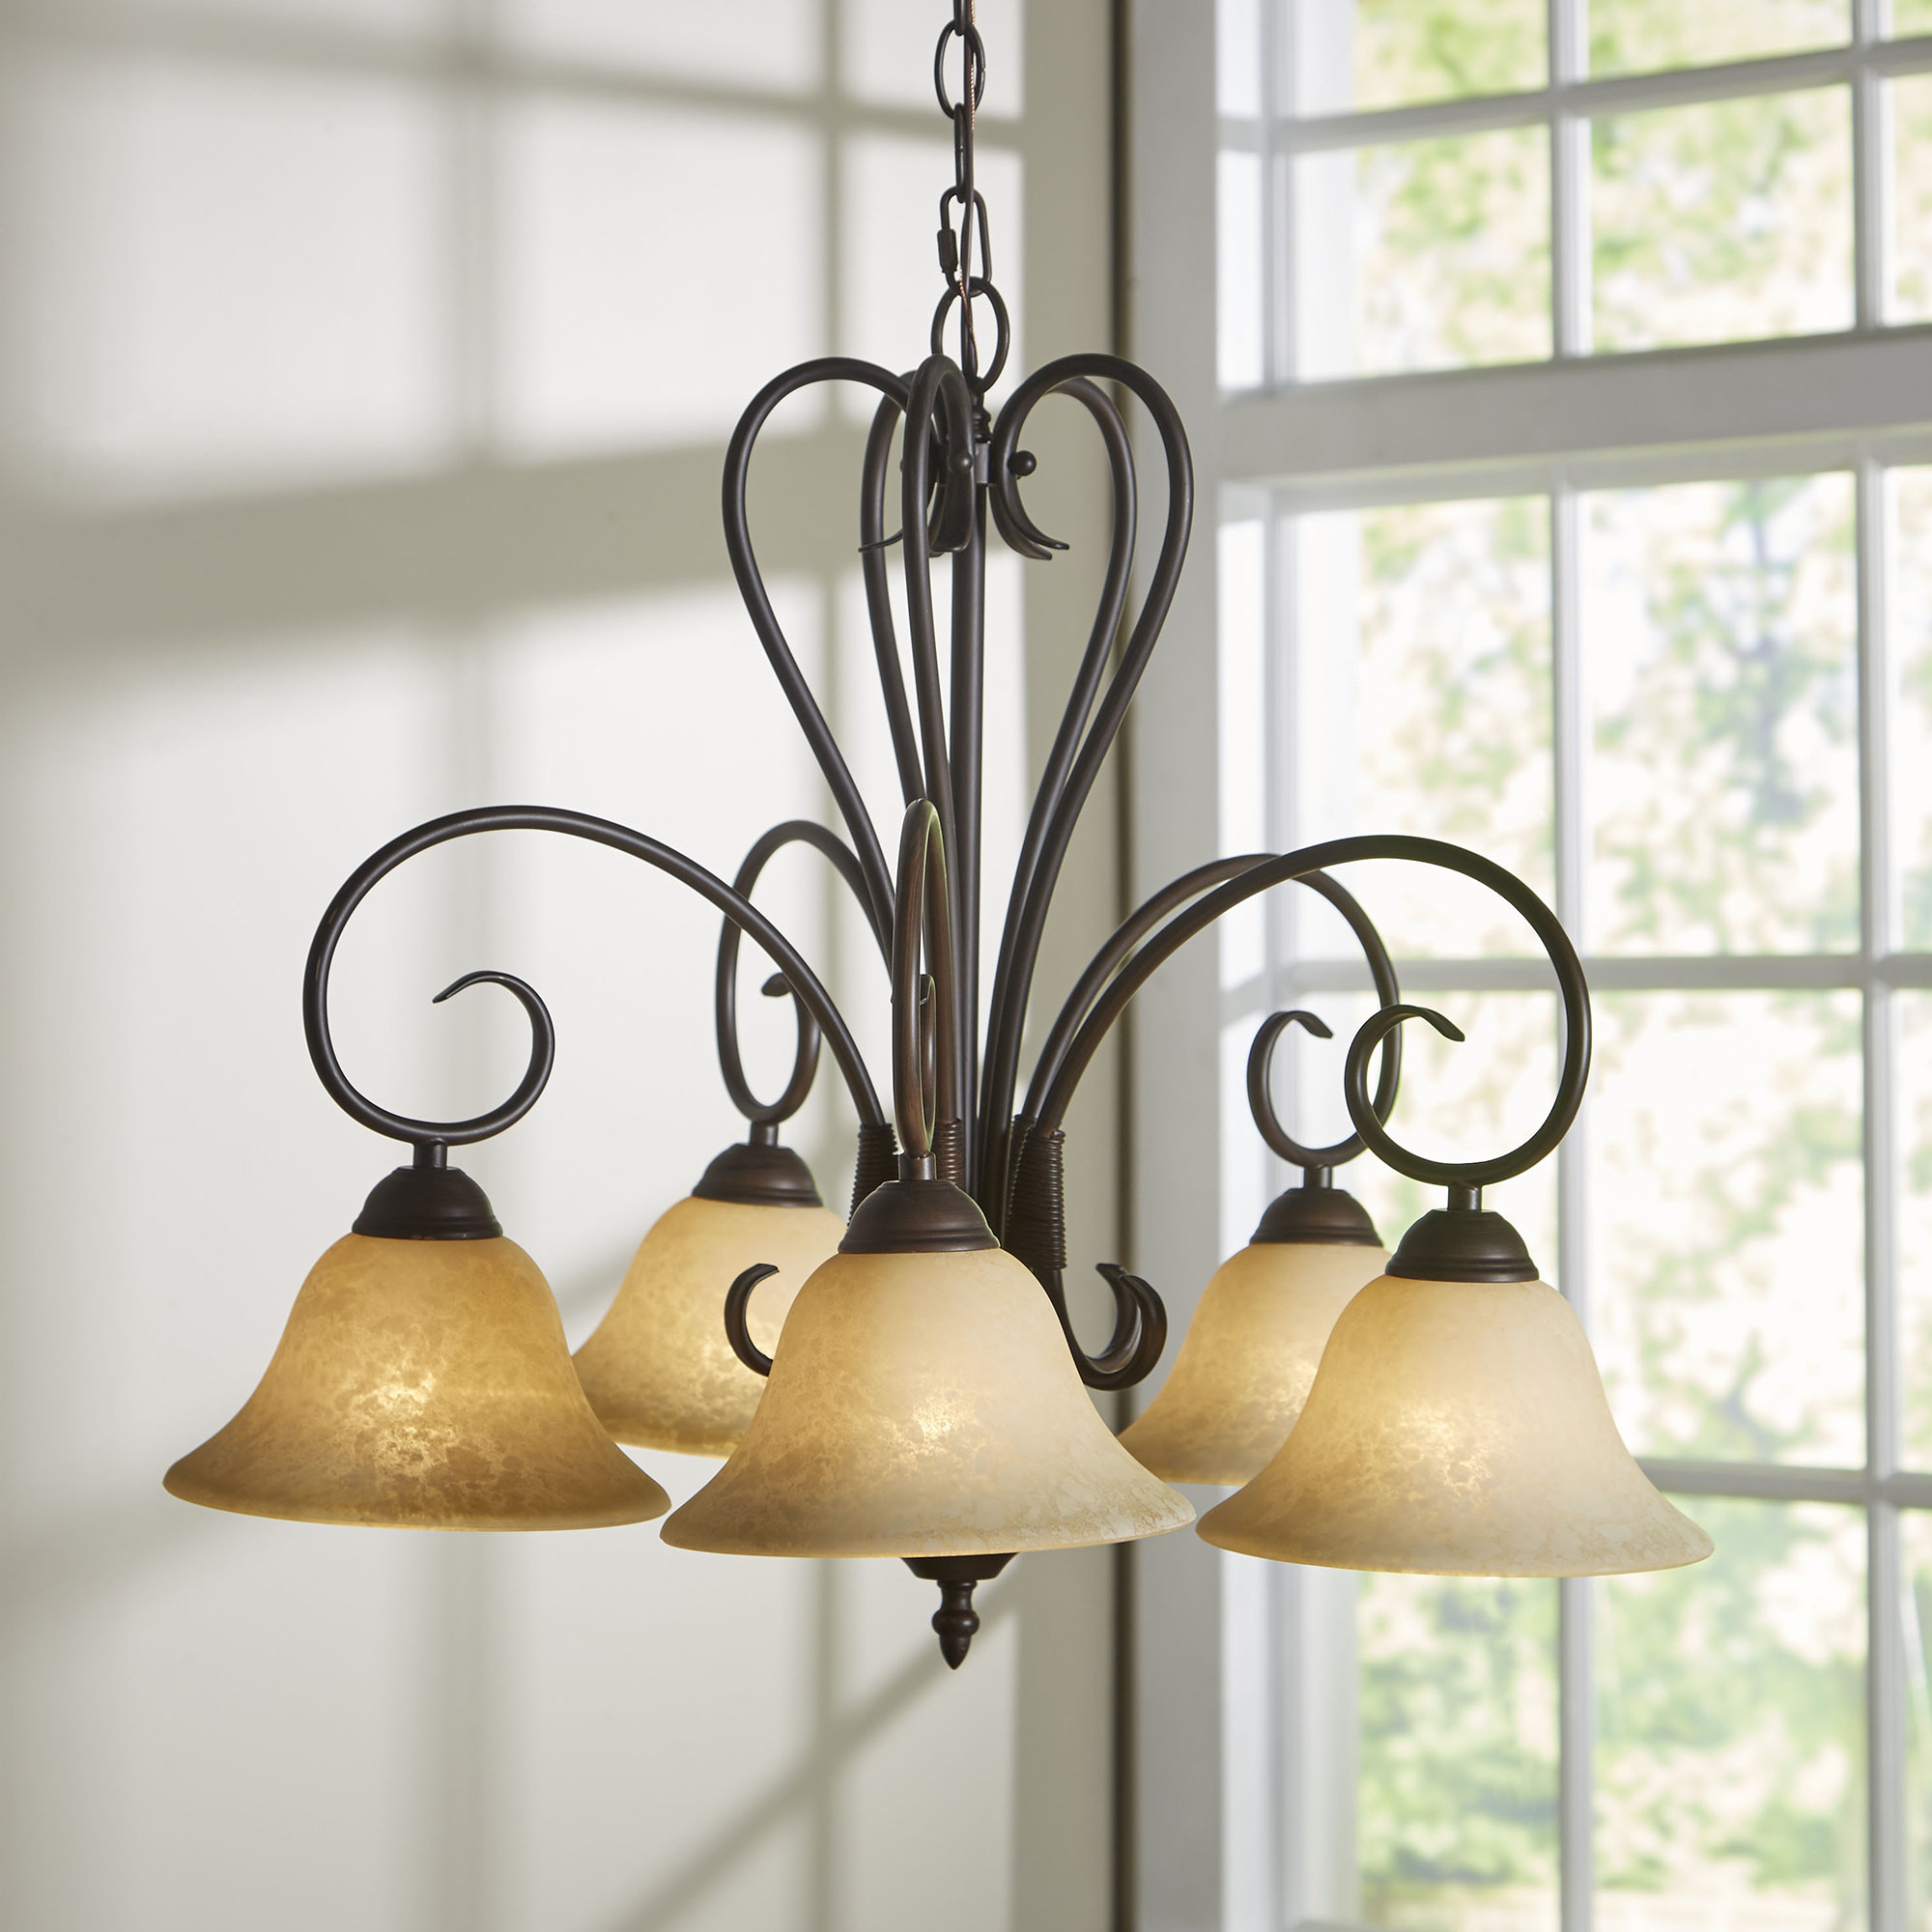 Most Recent Gaines 5 Light Shaded Chandelier Throughout Newent 5 Light Shaded Chandeliers (View 11 of 25)